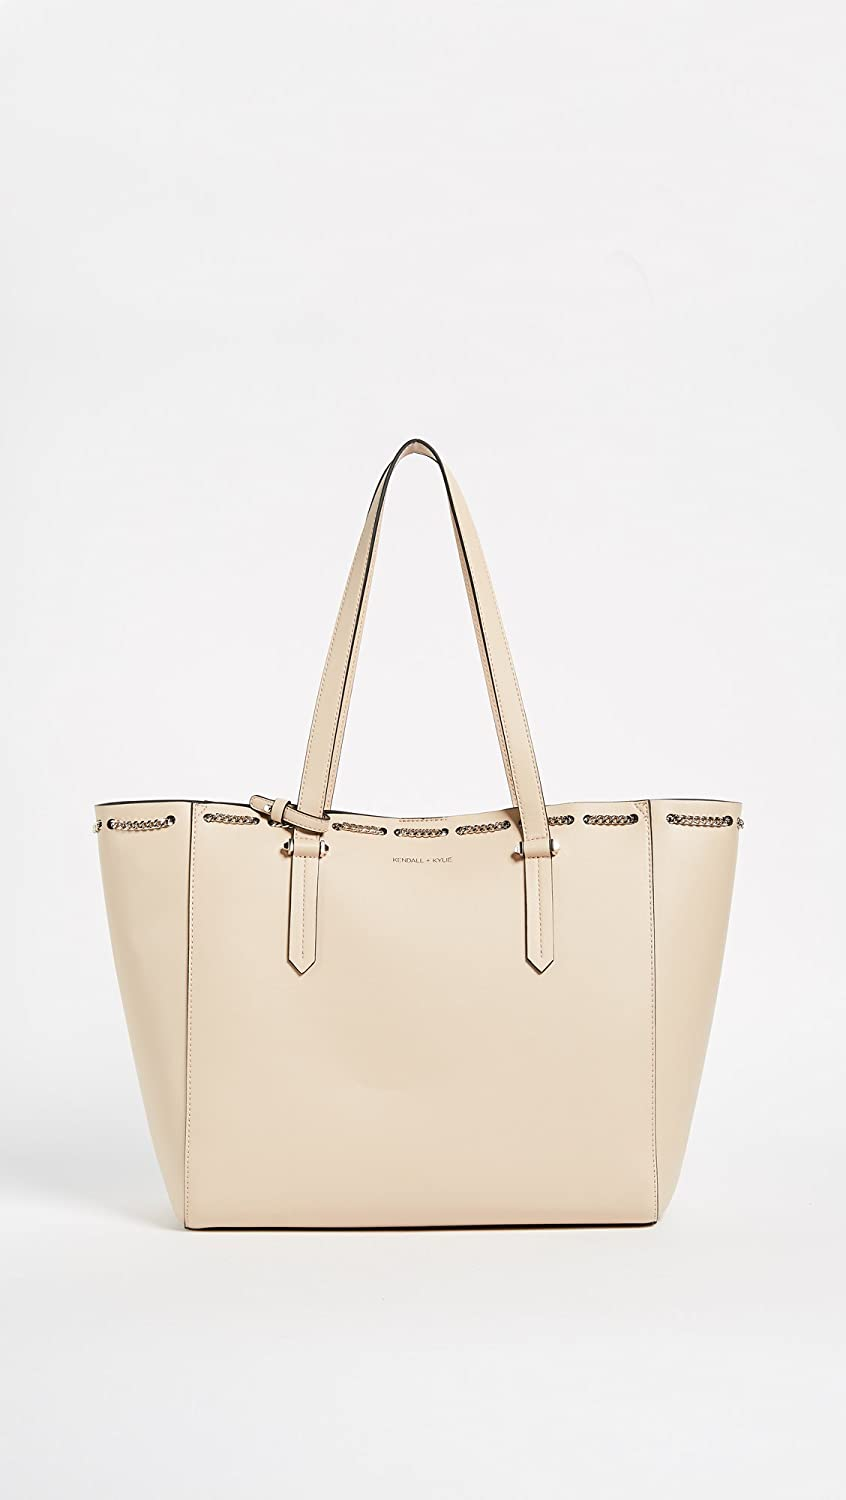 f5b35f7c39d1e KENDALL + KYLIE Women's Izzy Tote, Cream Tan, One Size: Amazon.ca ...